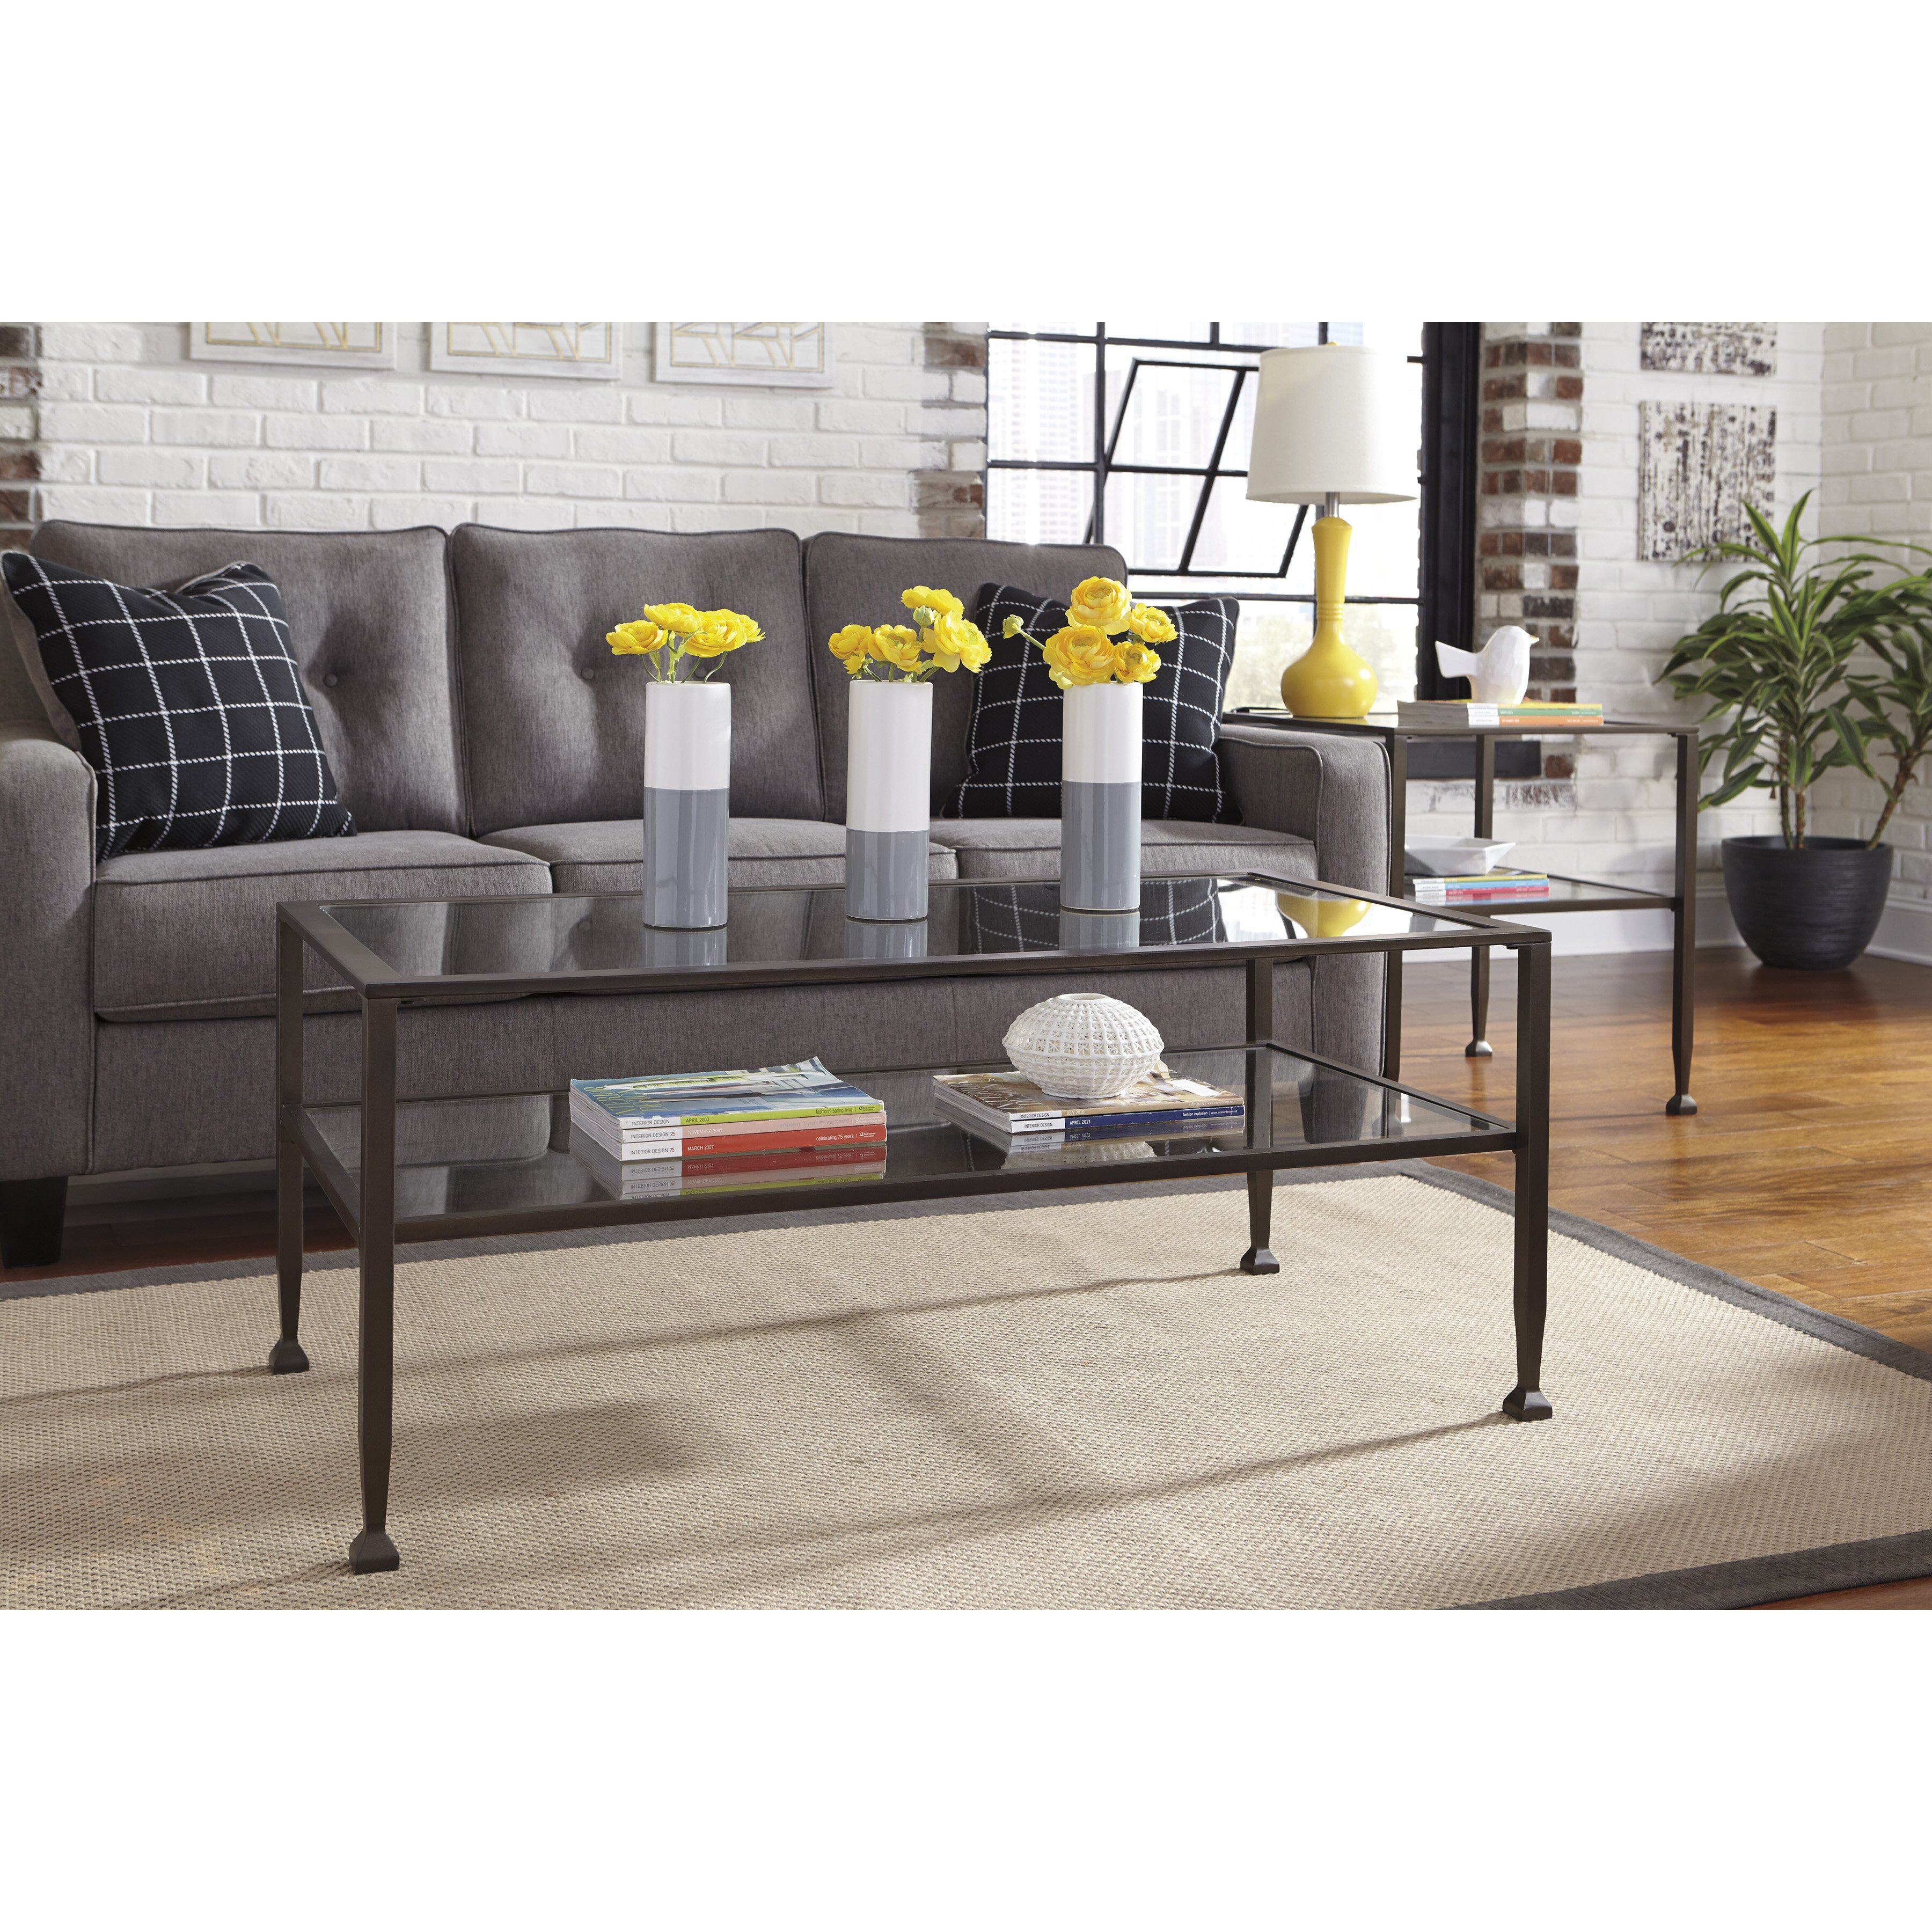 Signature Design by Ashley Tivion Coffee Table & Reviews